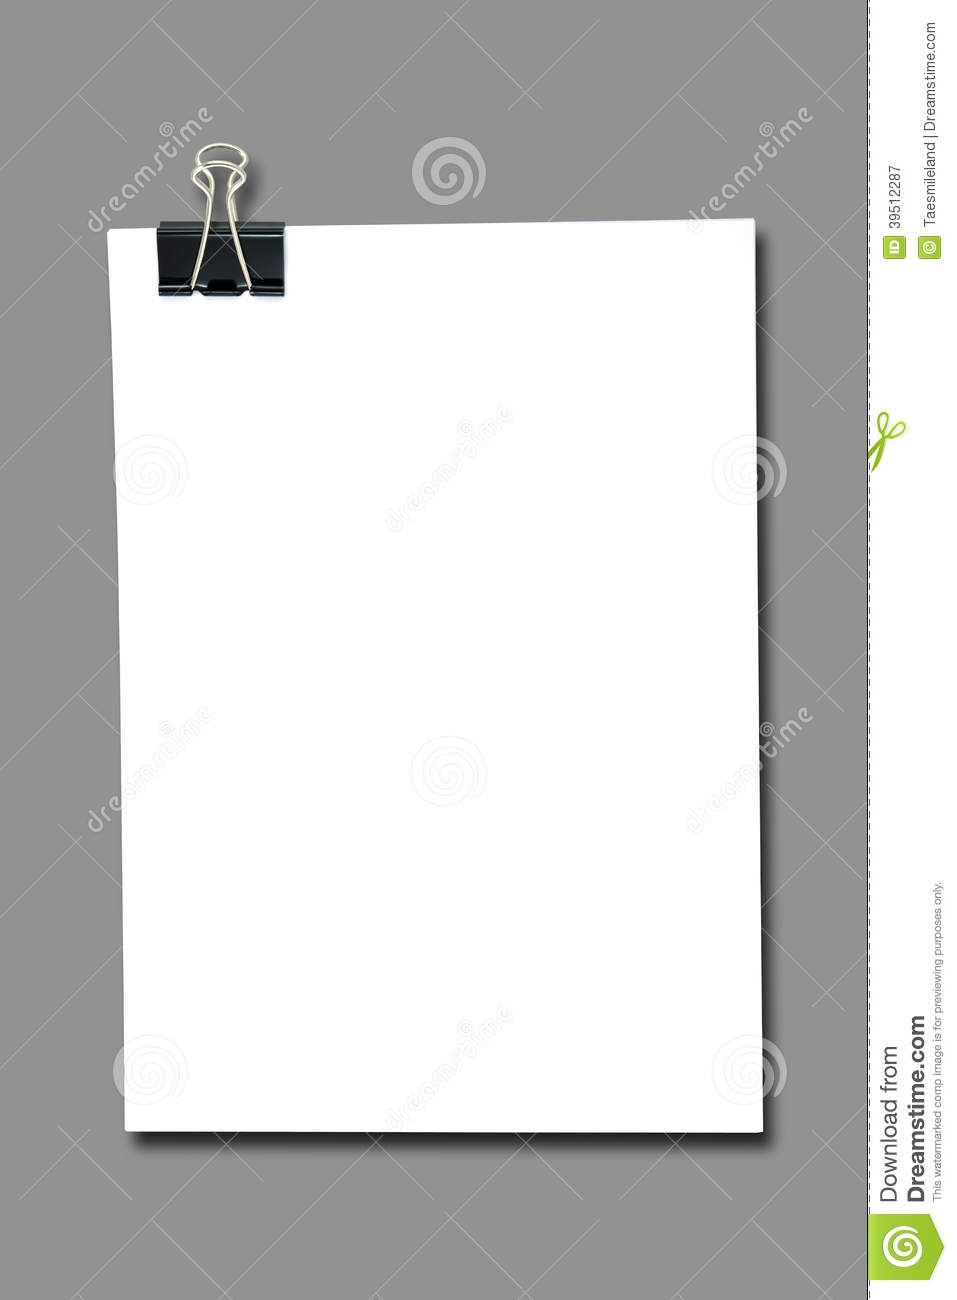 Binder clip and stack of paper